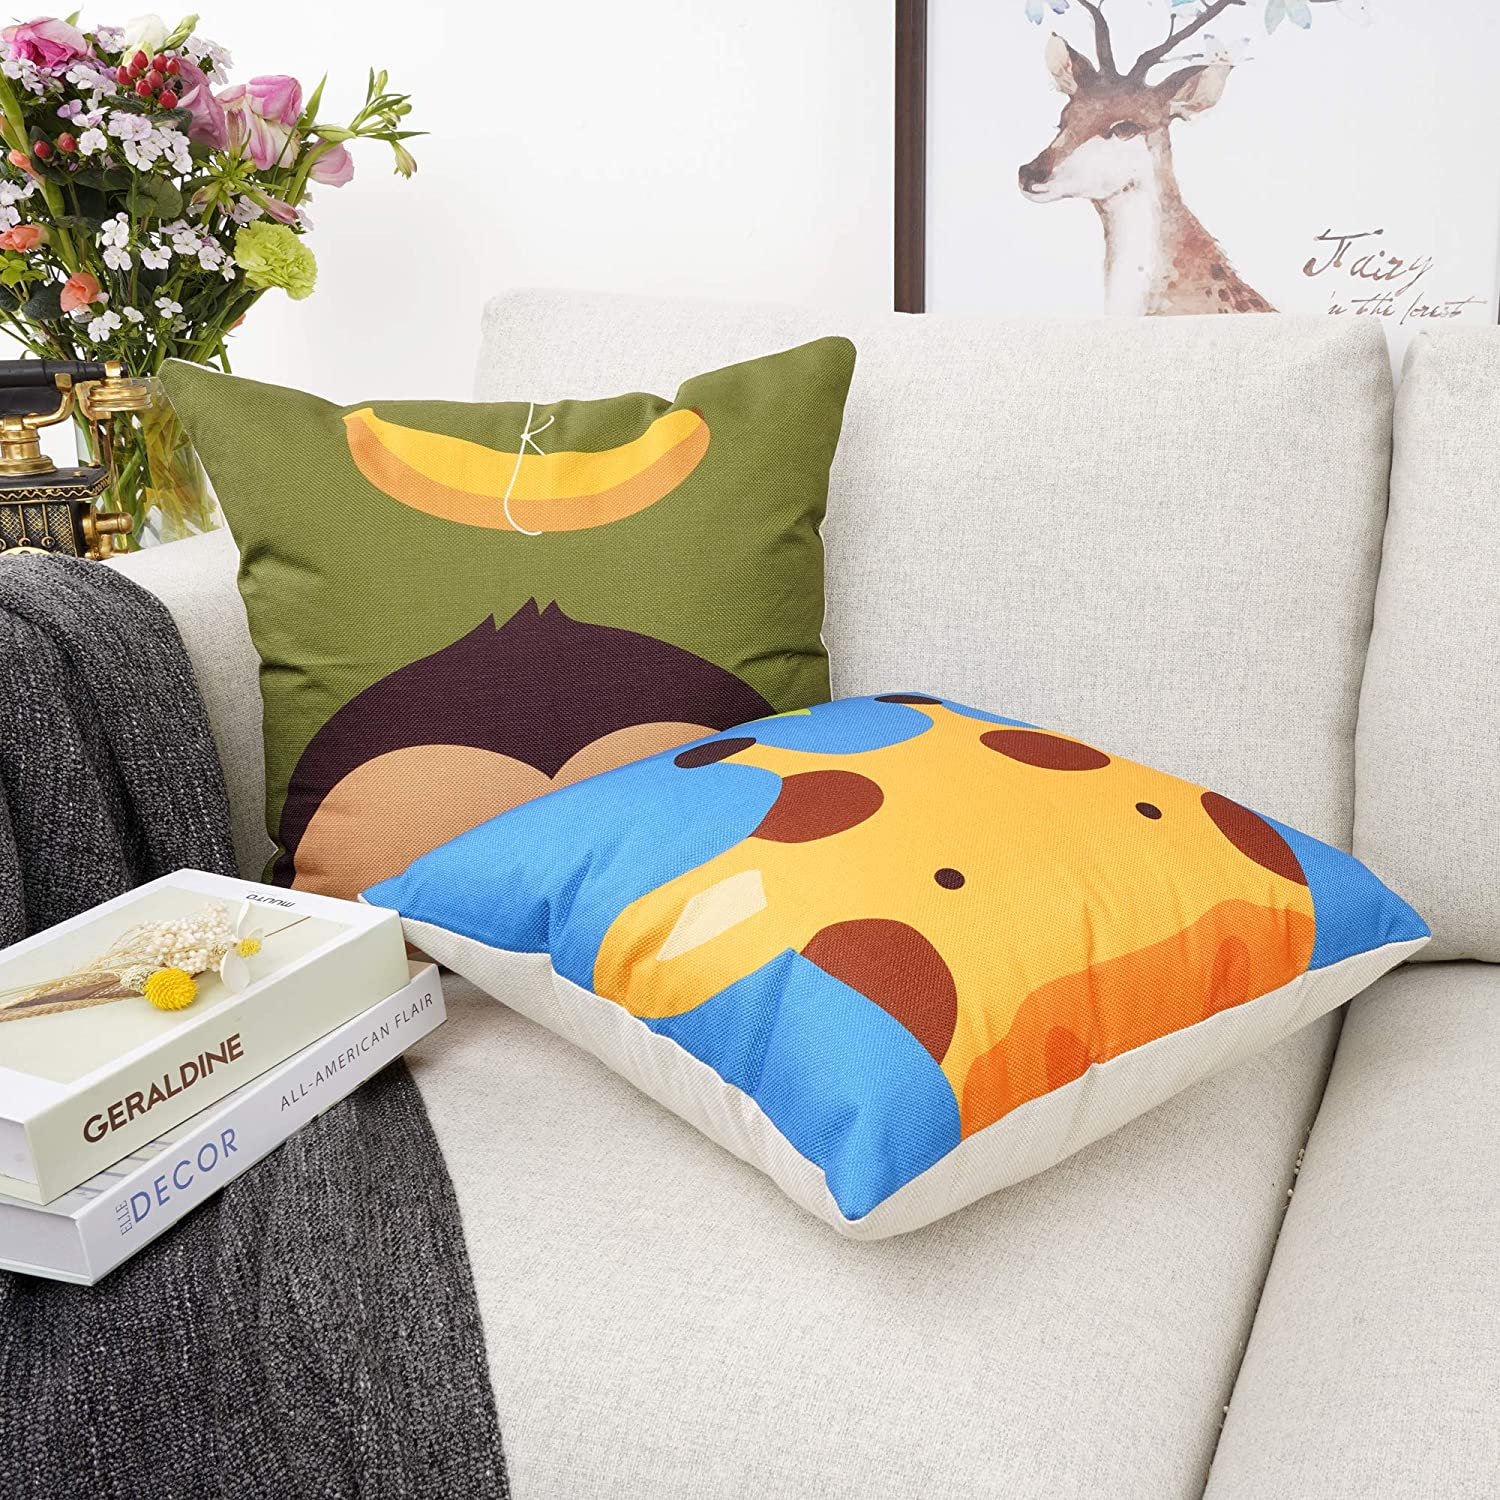 Kid Cute Cartoon Animal Print Back Cushion Covers Pillow Case Home Bedroom Decor